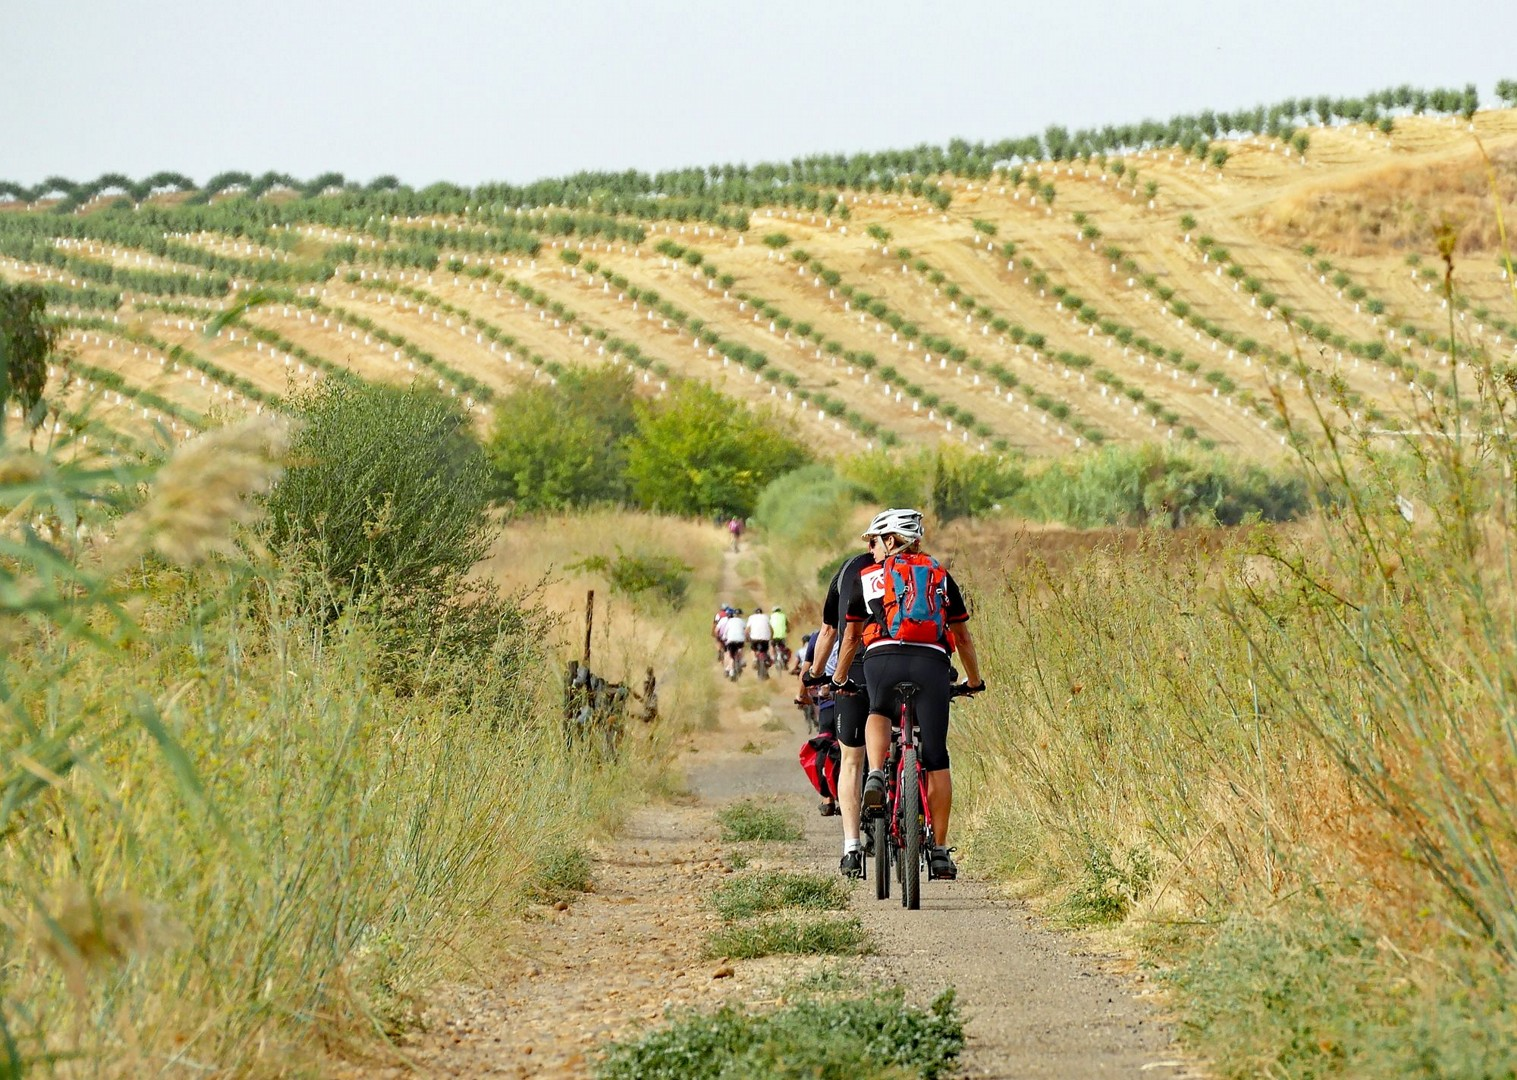 andalucia-cycling-holiday-in-spain-granada-seville.jpg - Spain - Granada to Seville - Guided Leisure Cycling Holiday - Leisure Cycling